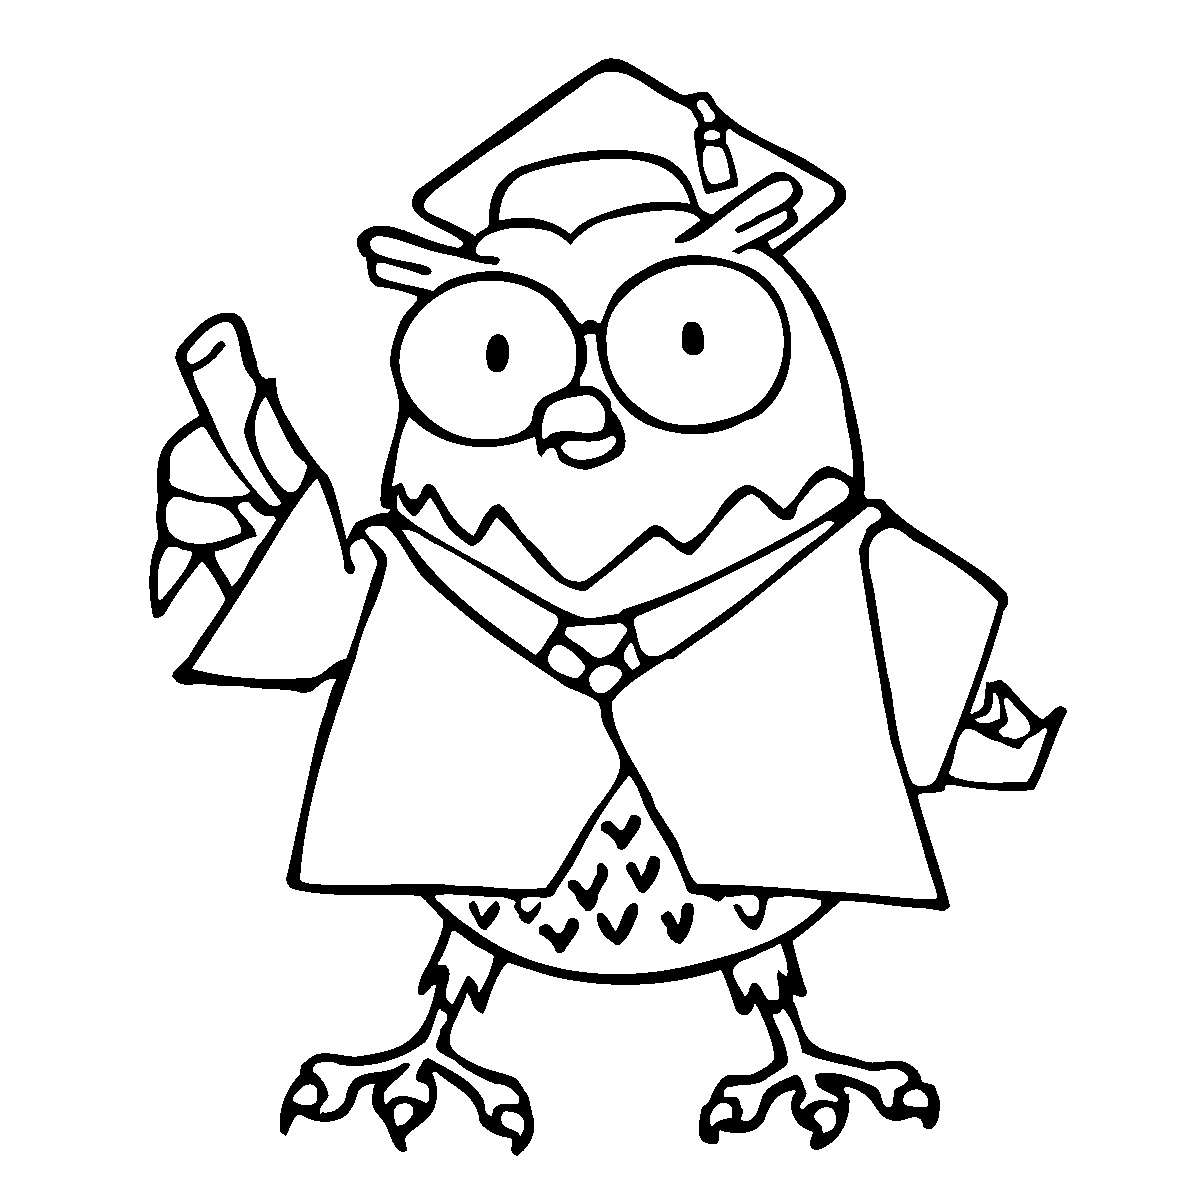 1200x1200 College Student Boy Caricature Coloring Page Free Printable